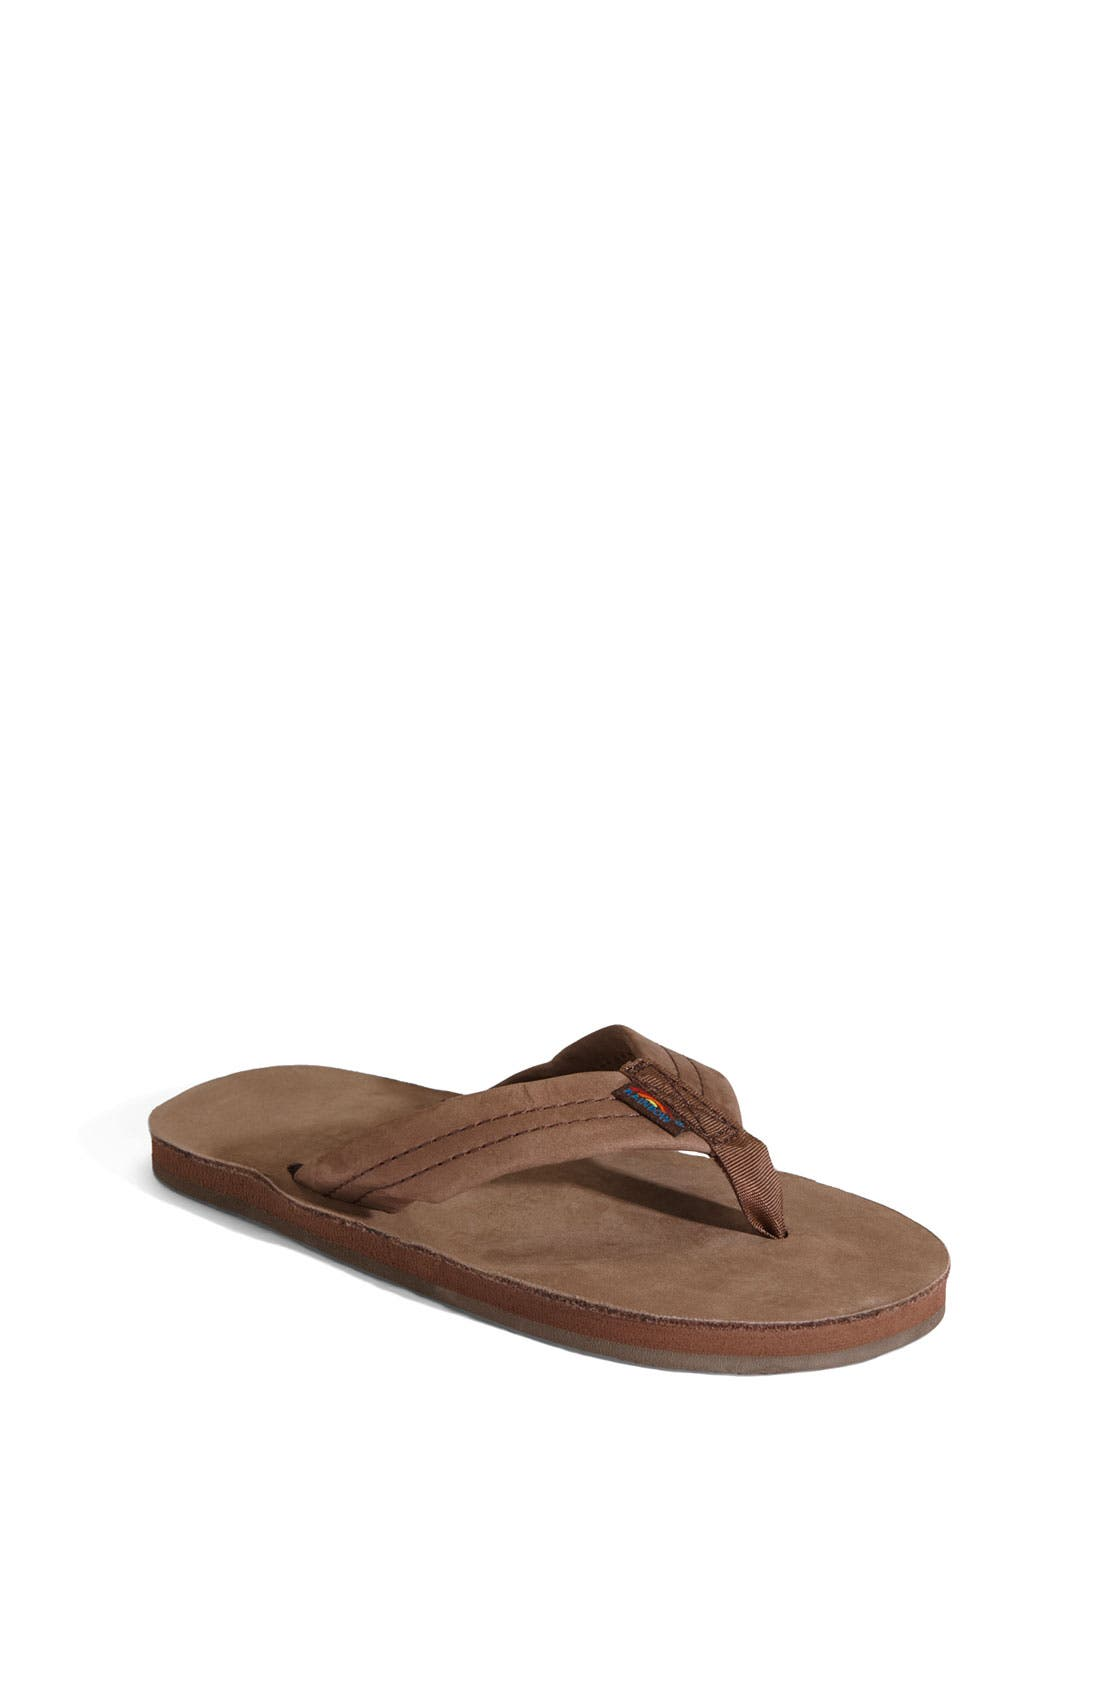 Leather Sandal,                         Main,                         color, EXPRESSO